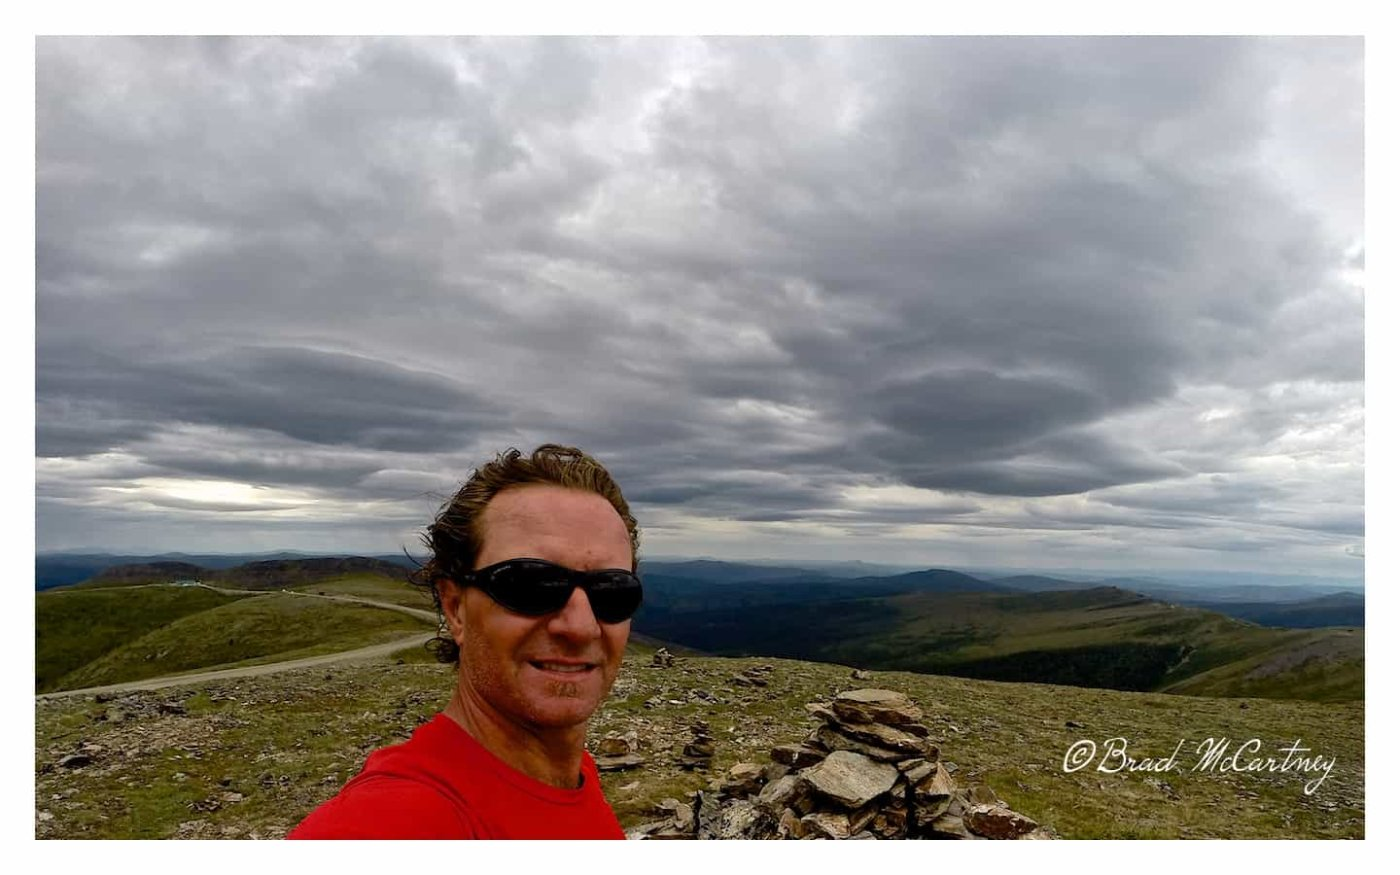 The high point of the Top of the World Hwy, Border post behind me